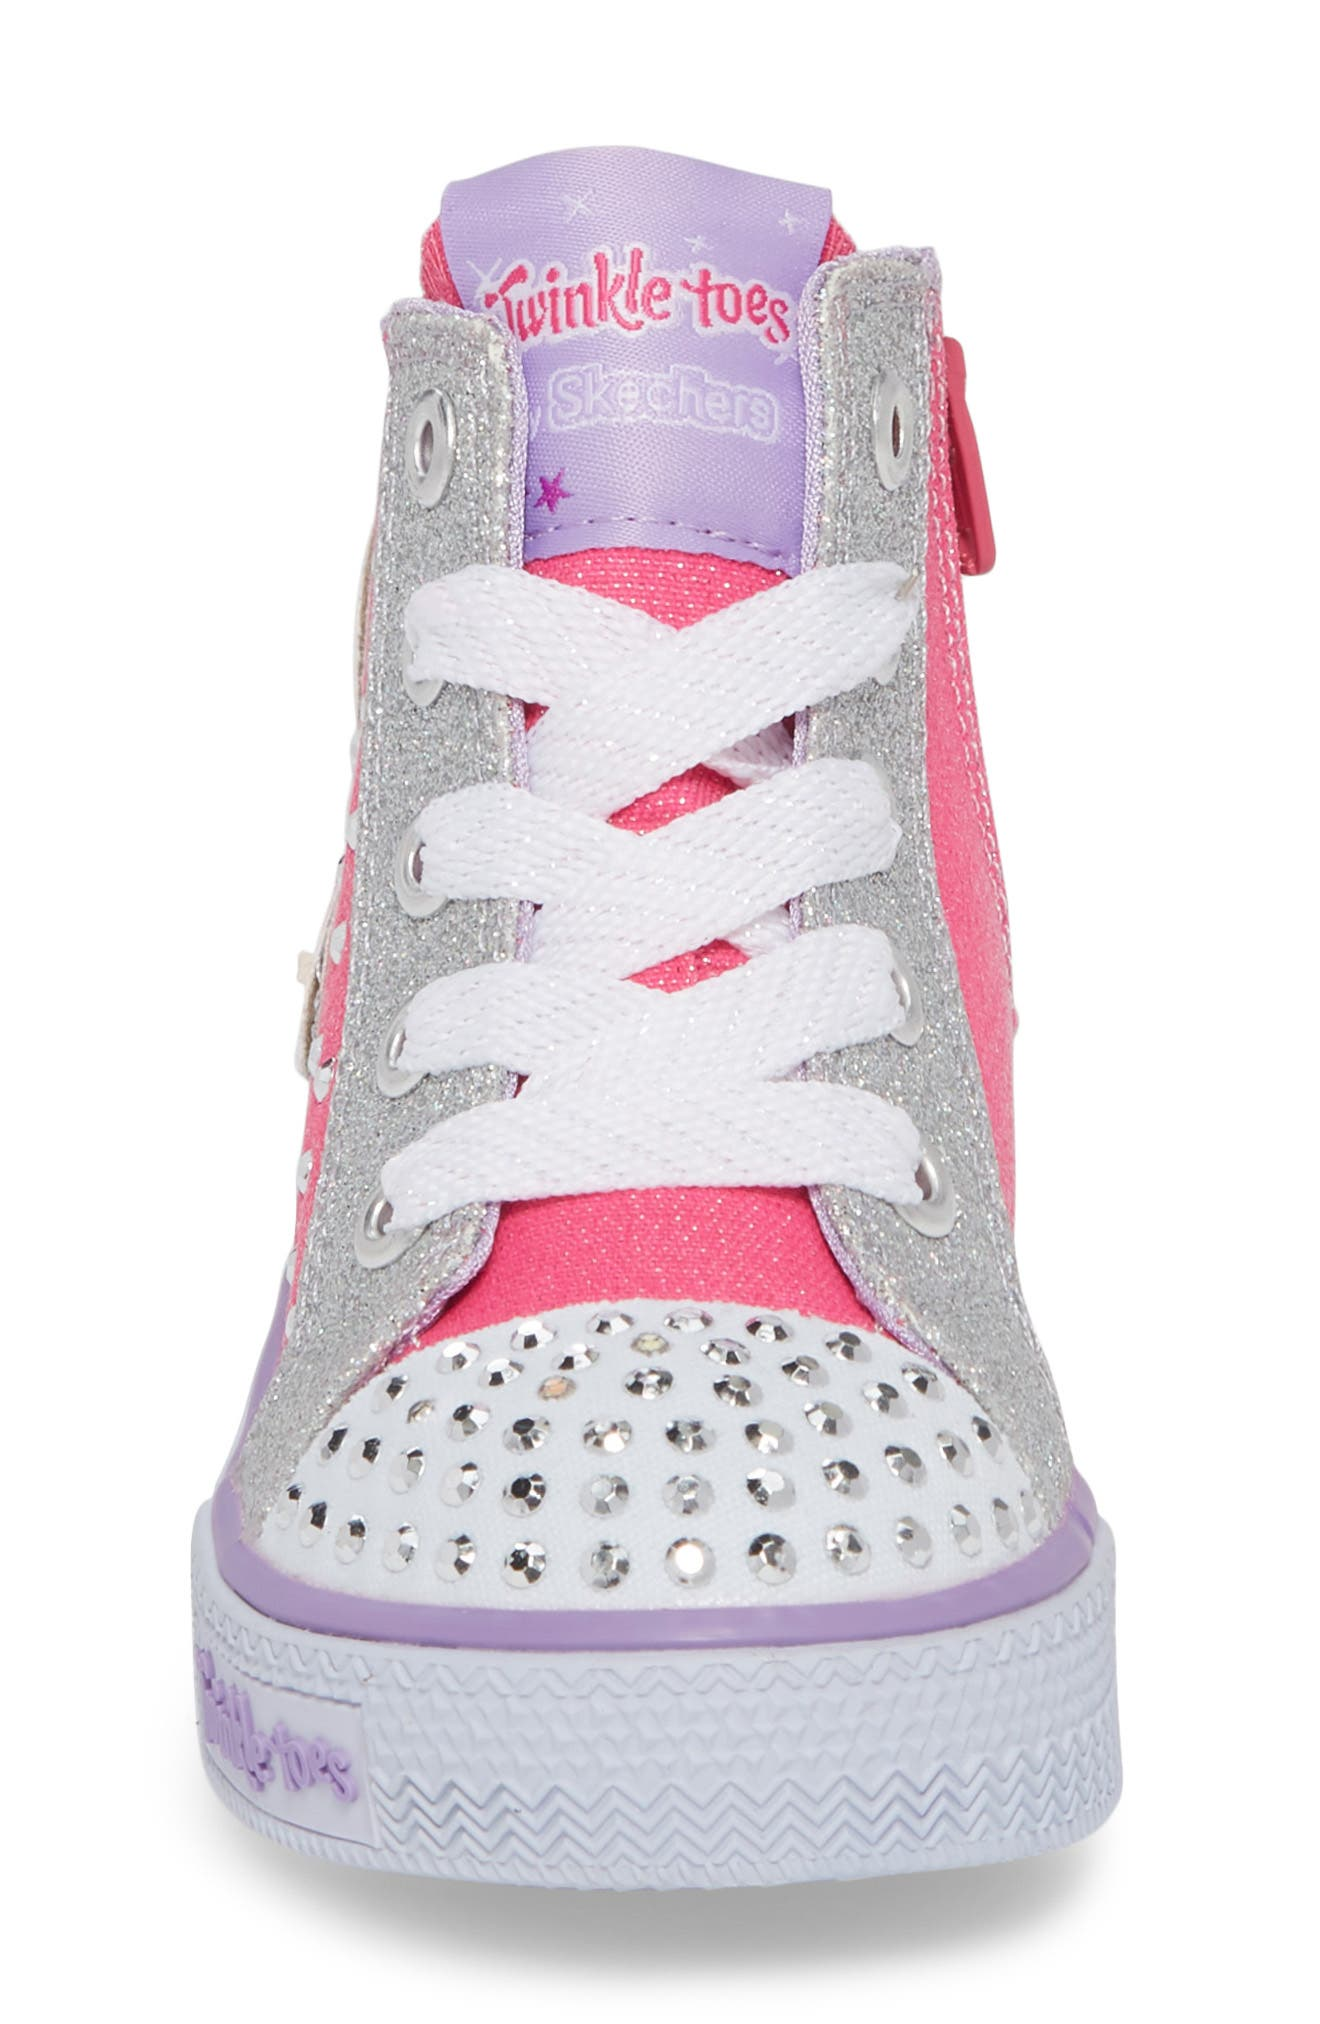 Twinkle Toes Shuffles Fooling Flutters Light-Up High Top Sneaker,                             Alternate thumbnail 4, color,                             650